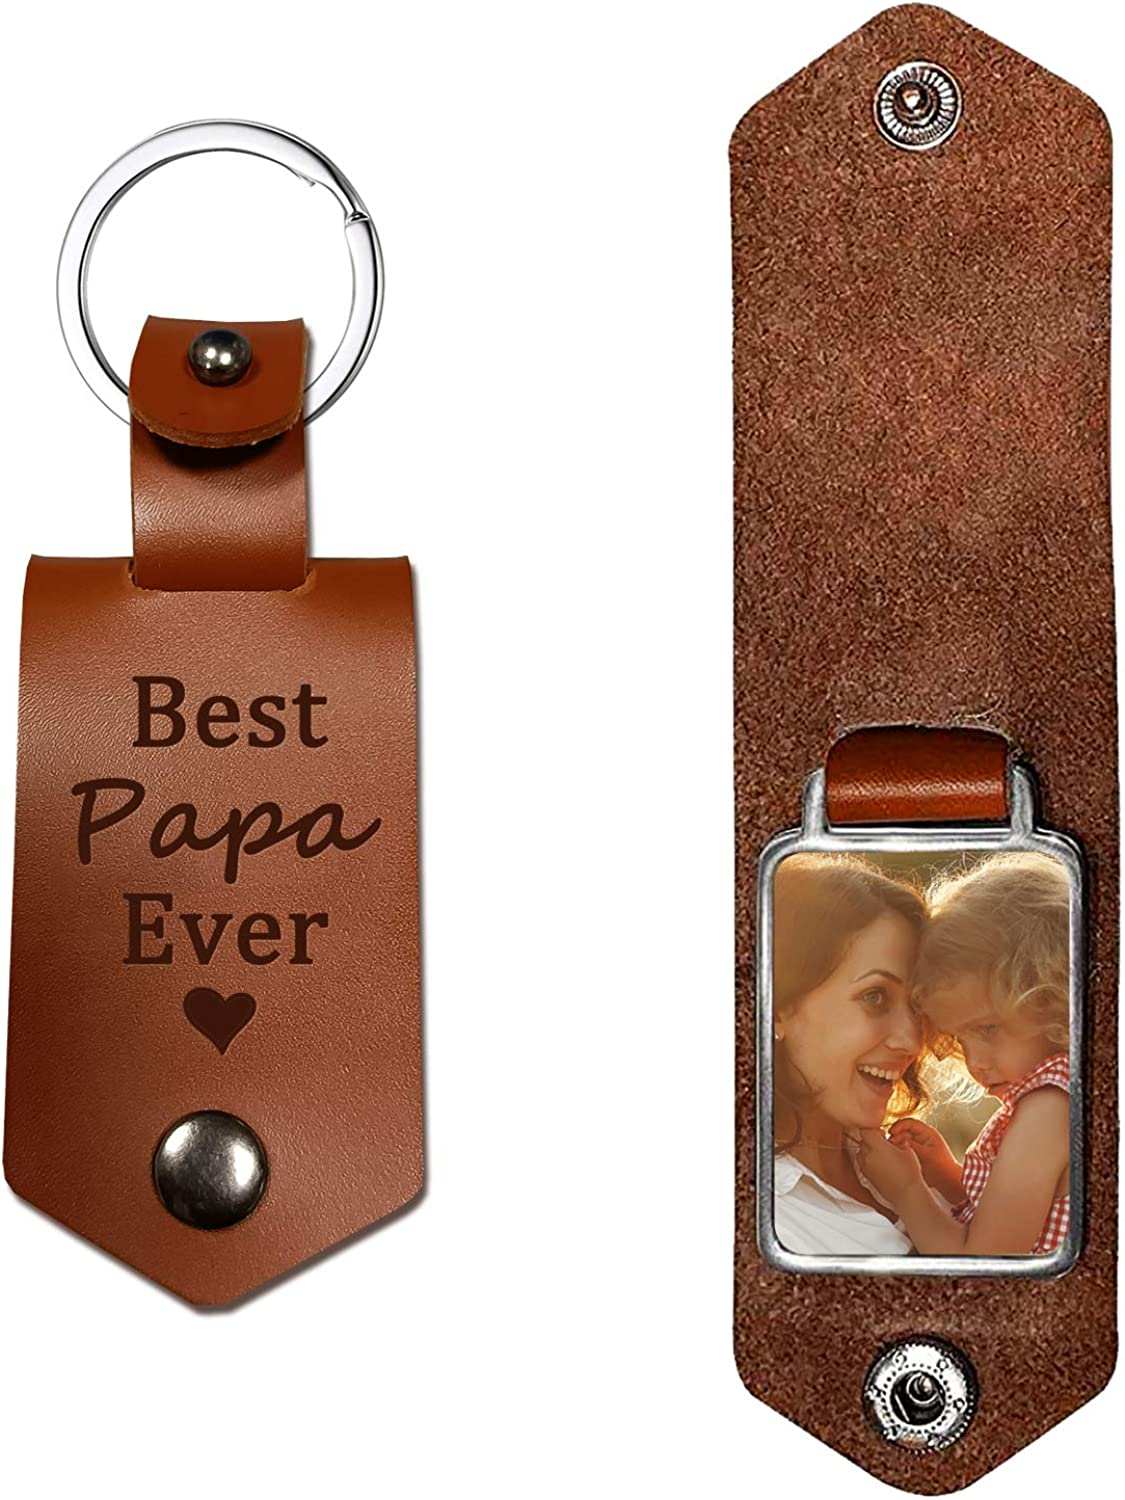 Leather Keychain-Dad Gifts-Best Papa Ever-Daddy Gifts from Daughter Son-Personalized Present for Papa Christmas Father's Day Birthday